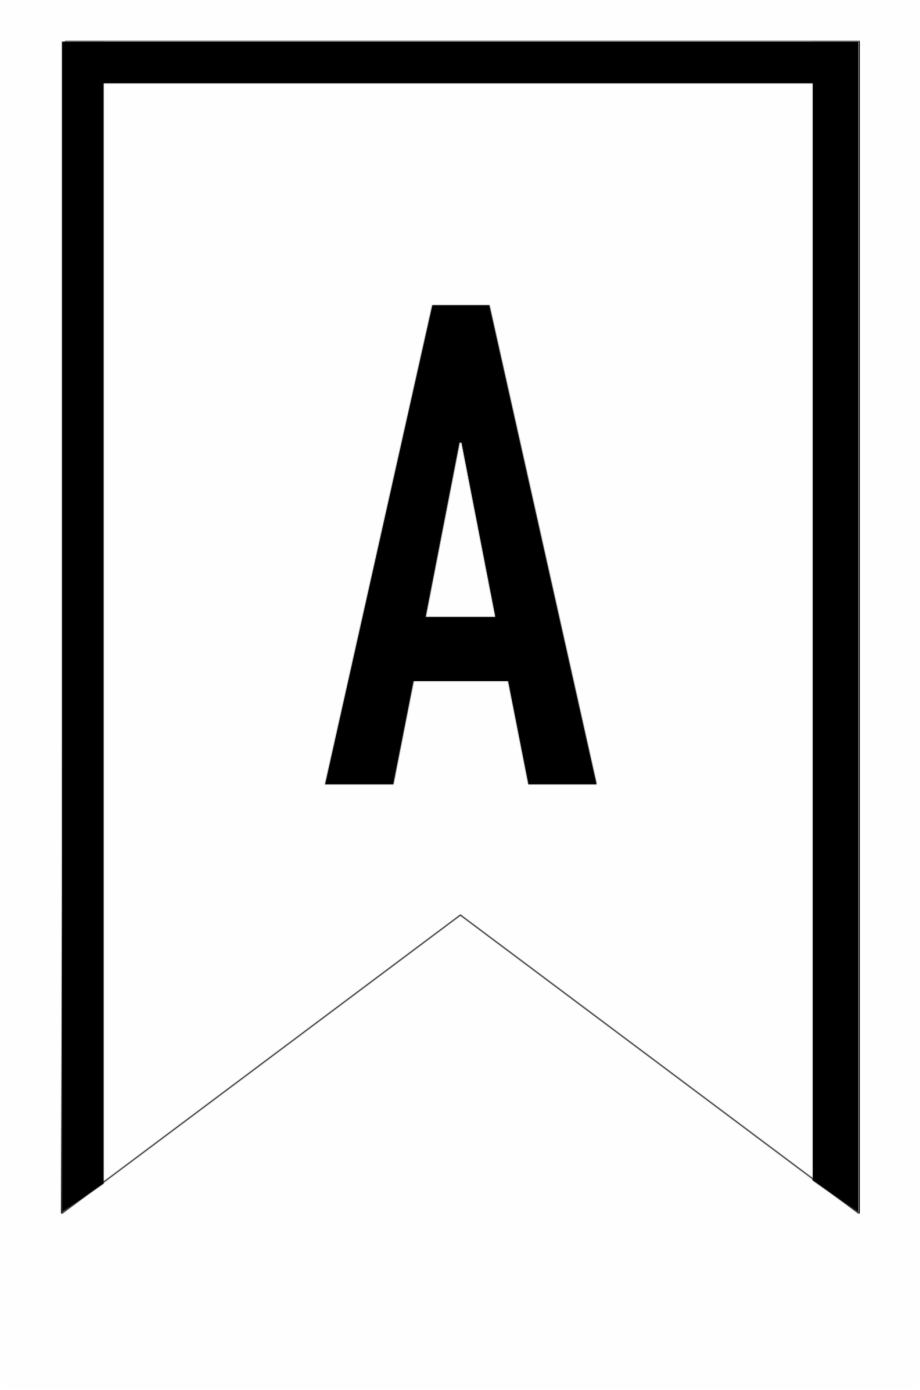 Banner Templates Free Printable Abc Letters - Printable Inside Printable Letter Templates For Banners